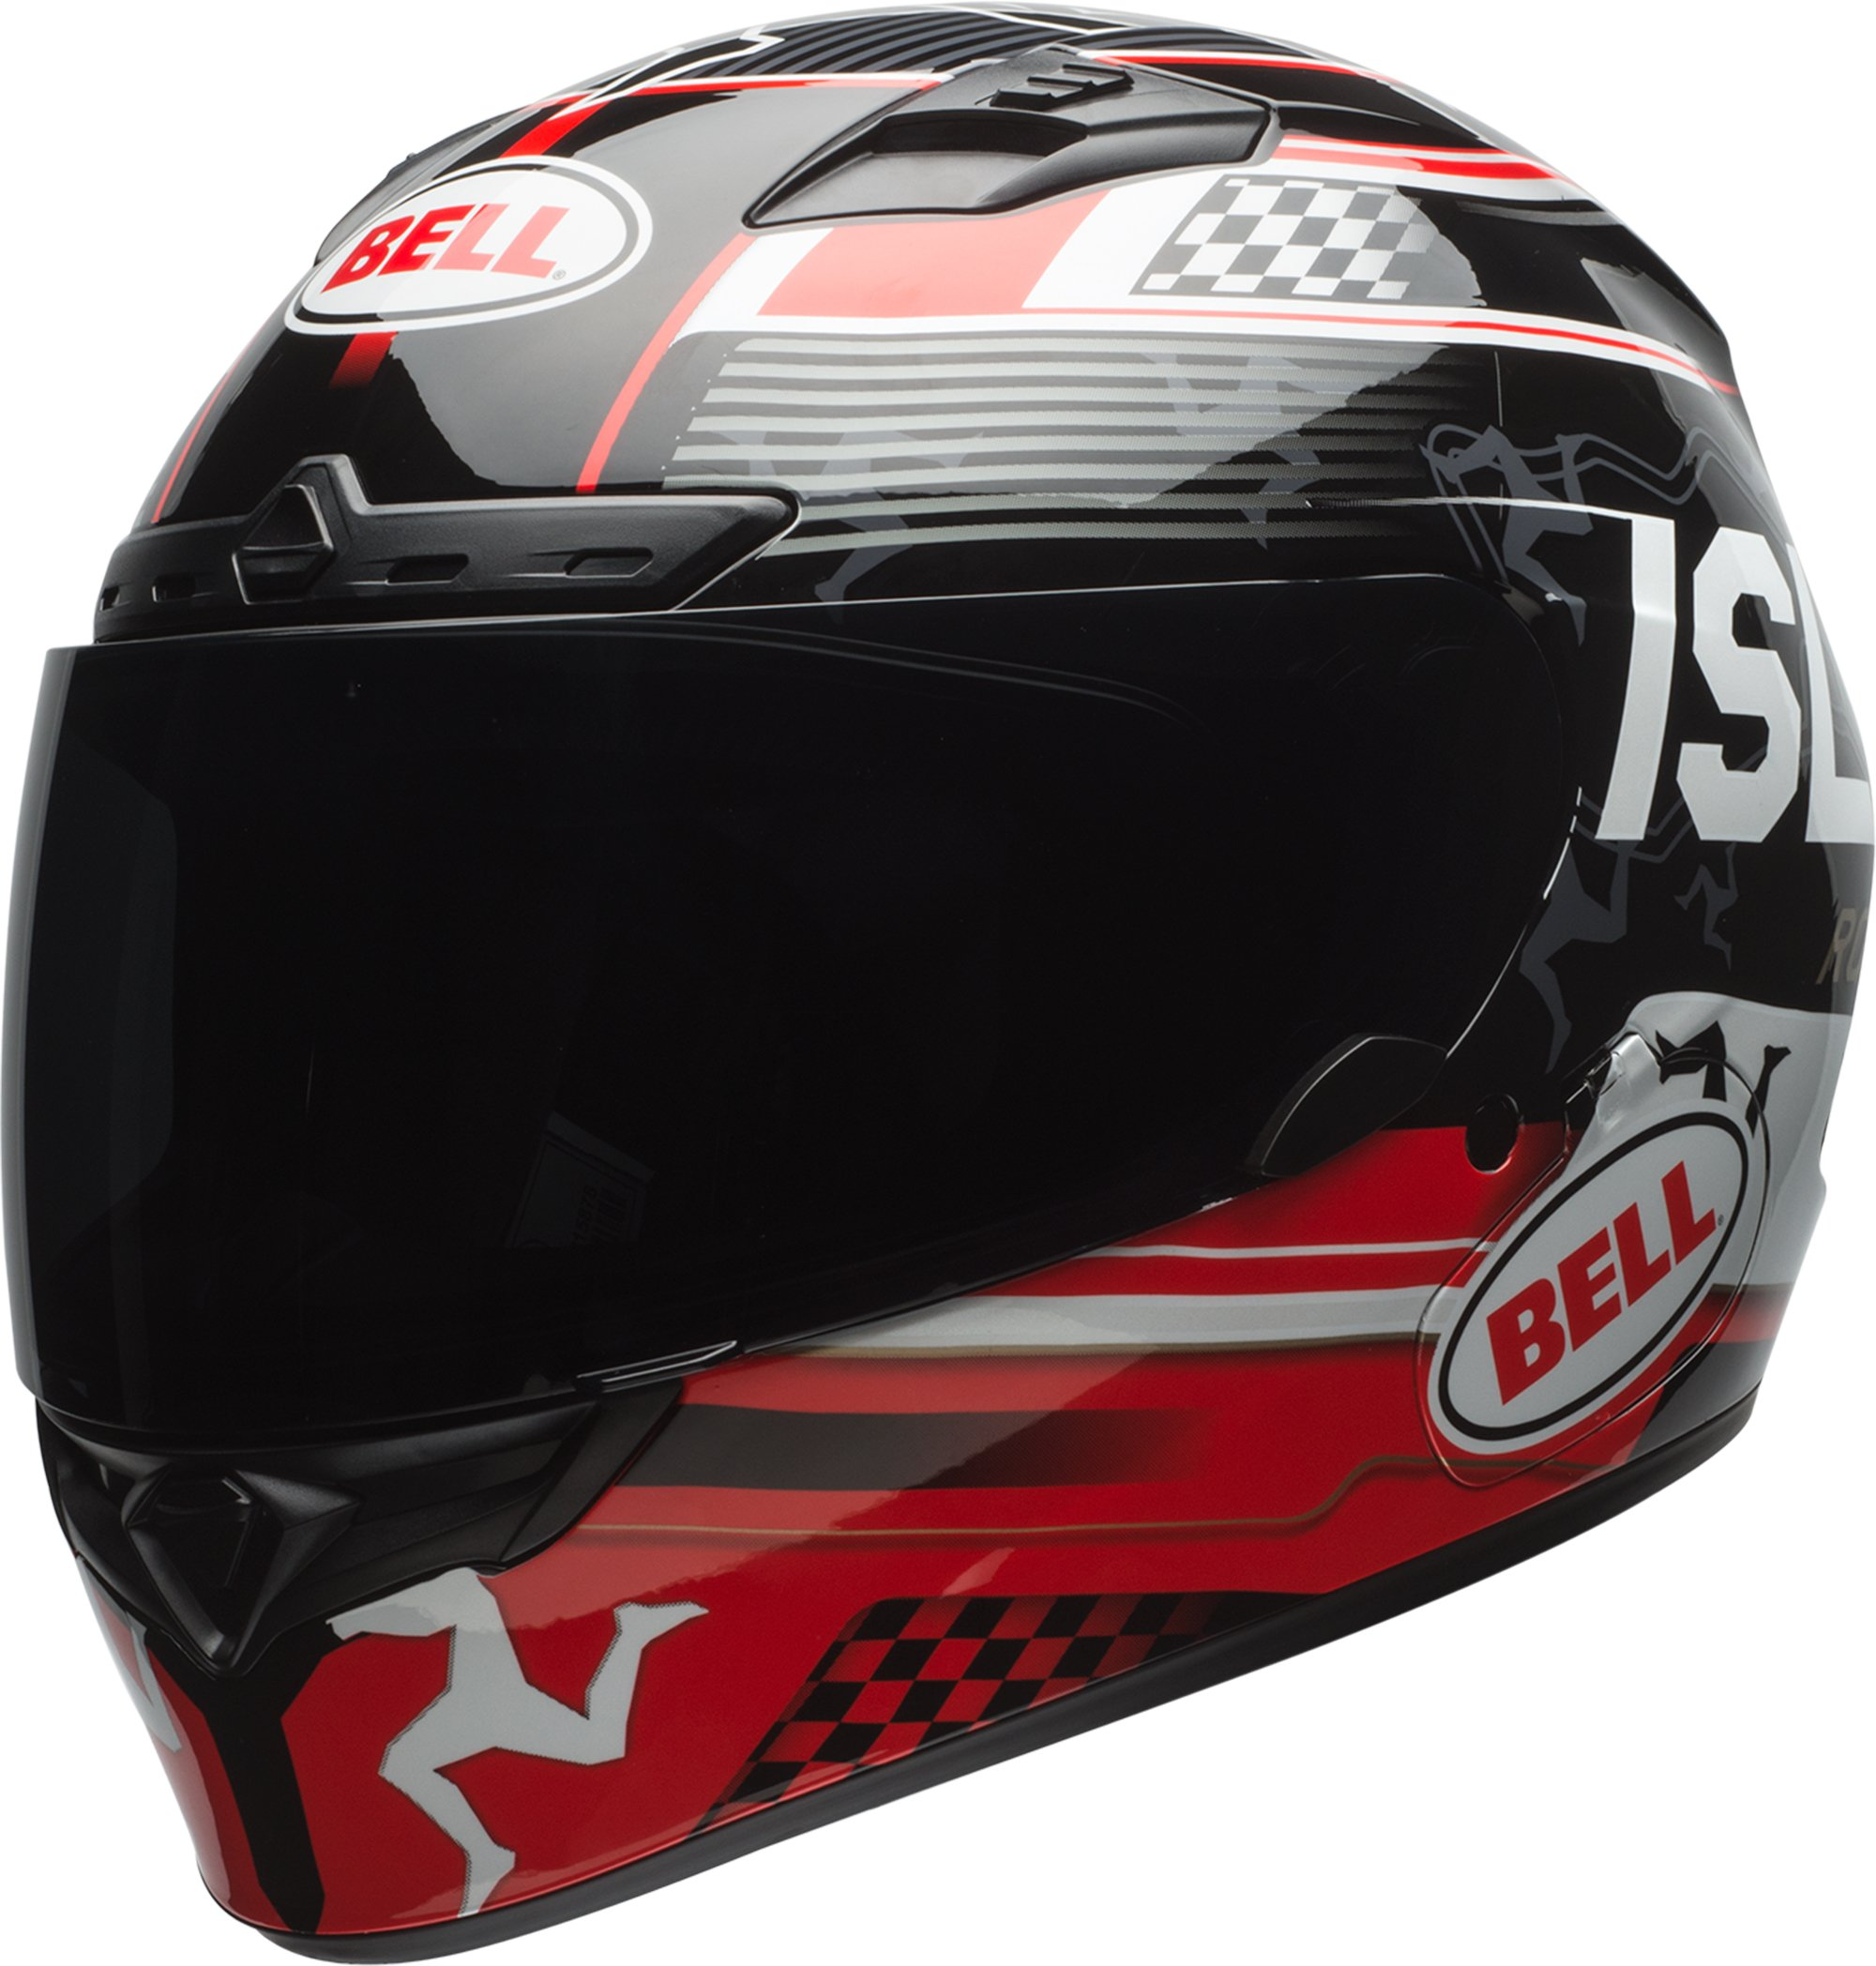 Bell Qualifier DLX Isle Of Man Black/Red Full Face Helmet - X-Large by Bell (Image #5)